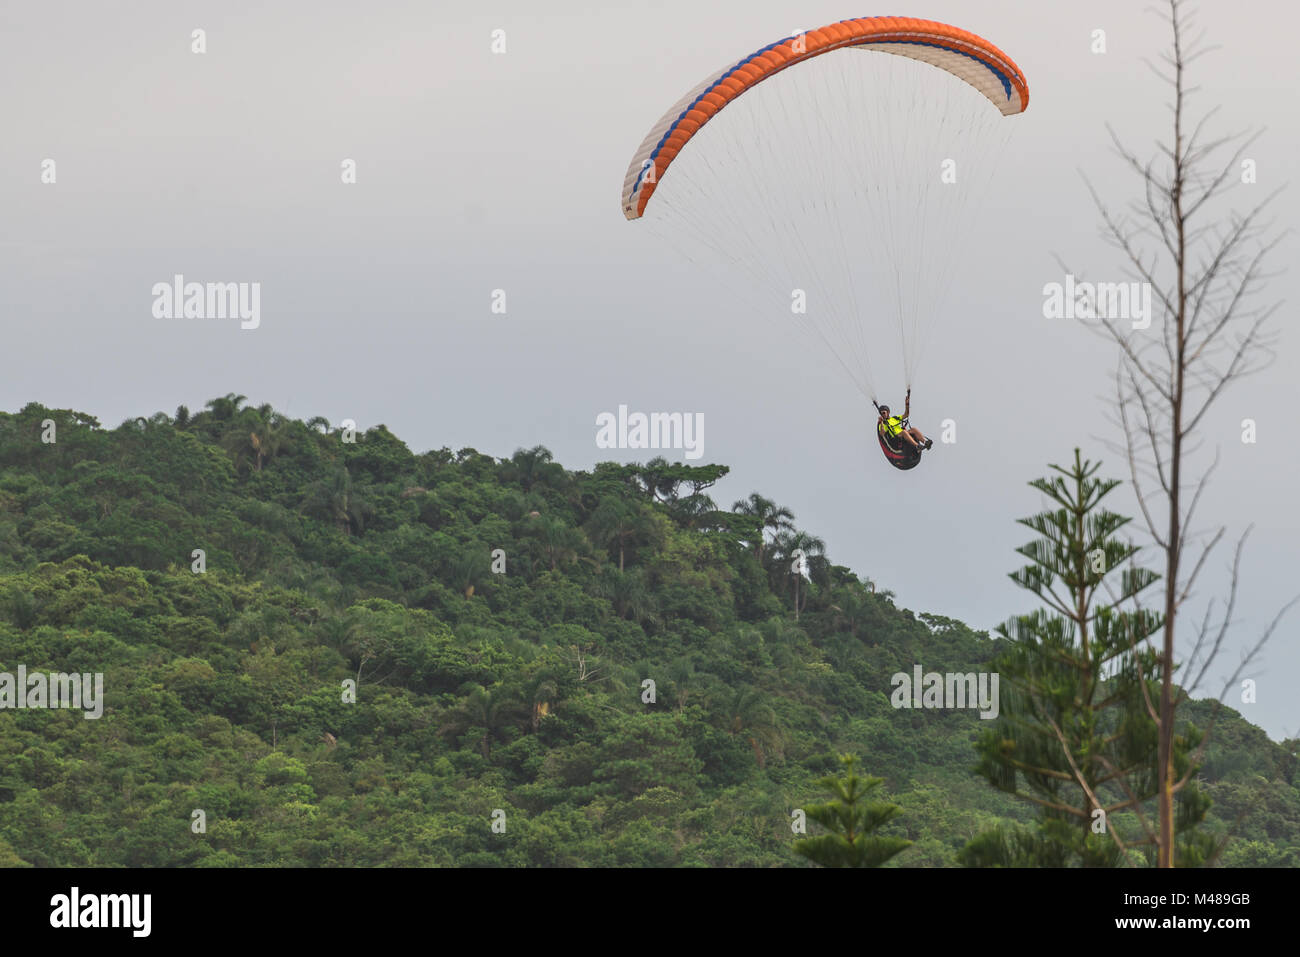 Paragliding at the Brava beach in Florianopolis - Stock Image